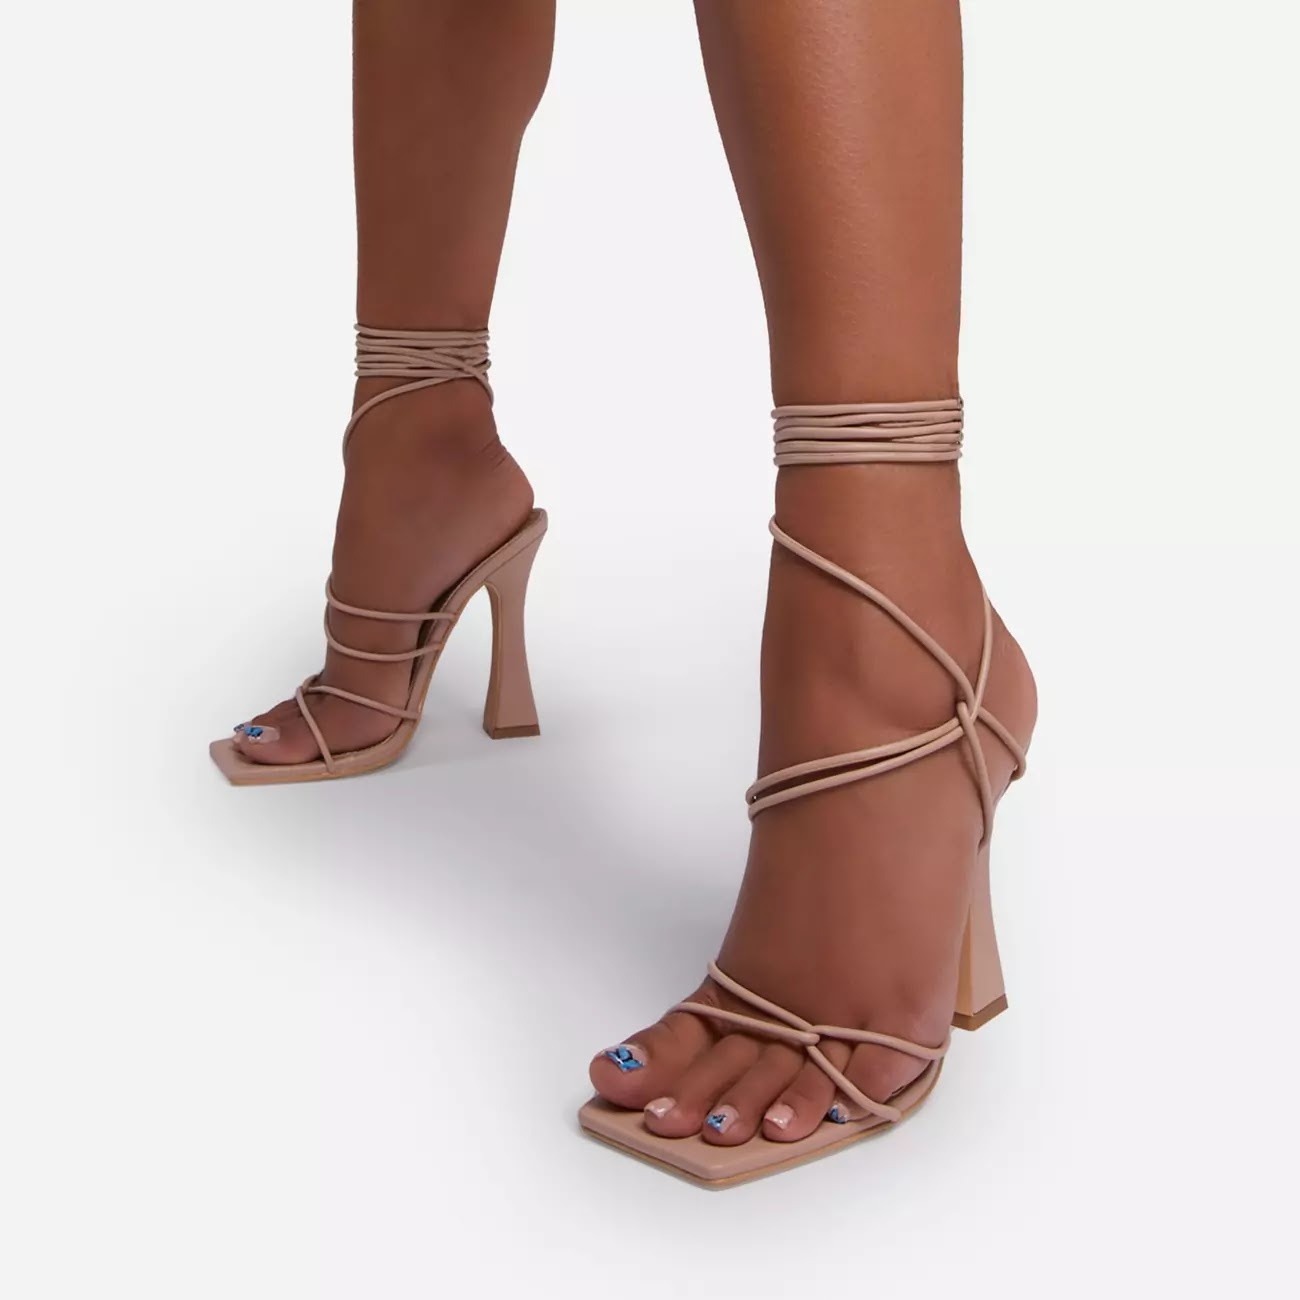 https://ego.co.uk/hab565-seduce-lace-up-strappy-square-toe-curved-block-heel-in-nude-faux-leather.html?awc=7576_1598479536_dbb786f5afa83eaa875a55329609f058&utm_source=awin&utm_medium=affiliate&utm_campaign=637679